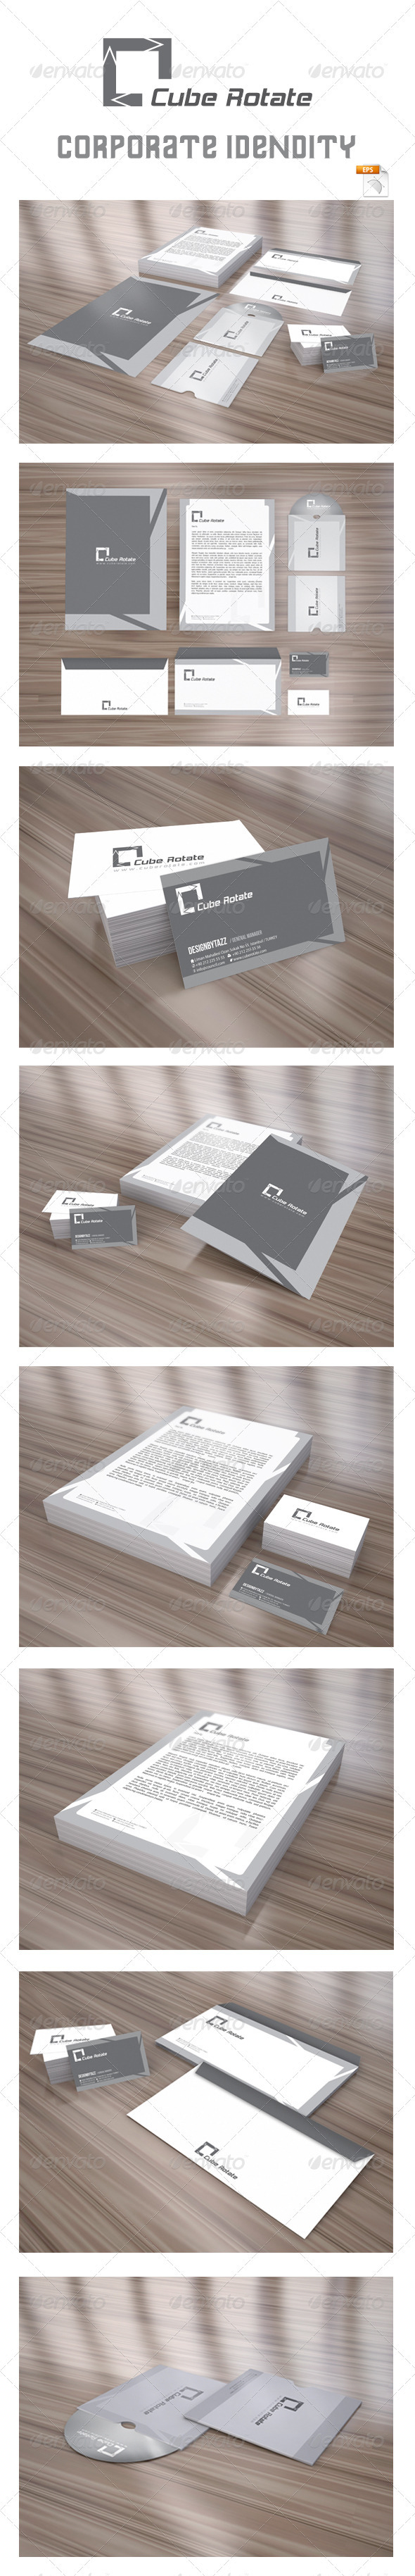 GraphicRiver Cube Rotate Corporate Identity Package 3895733